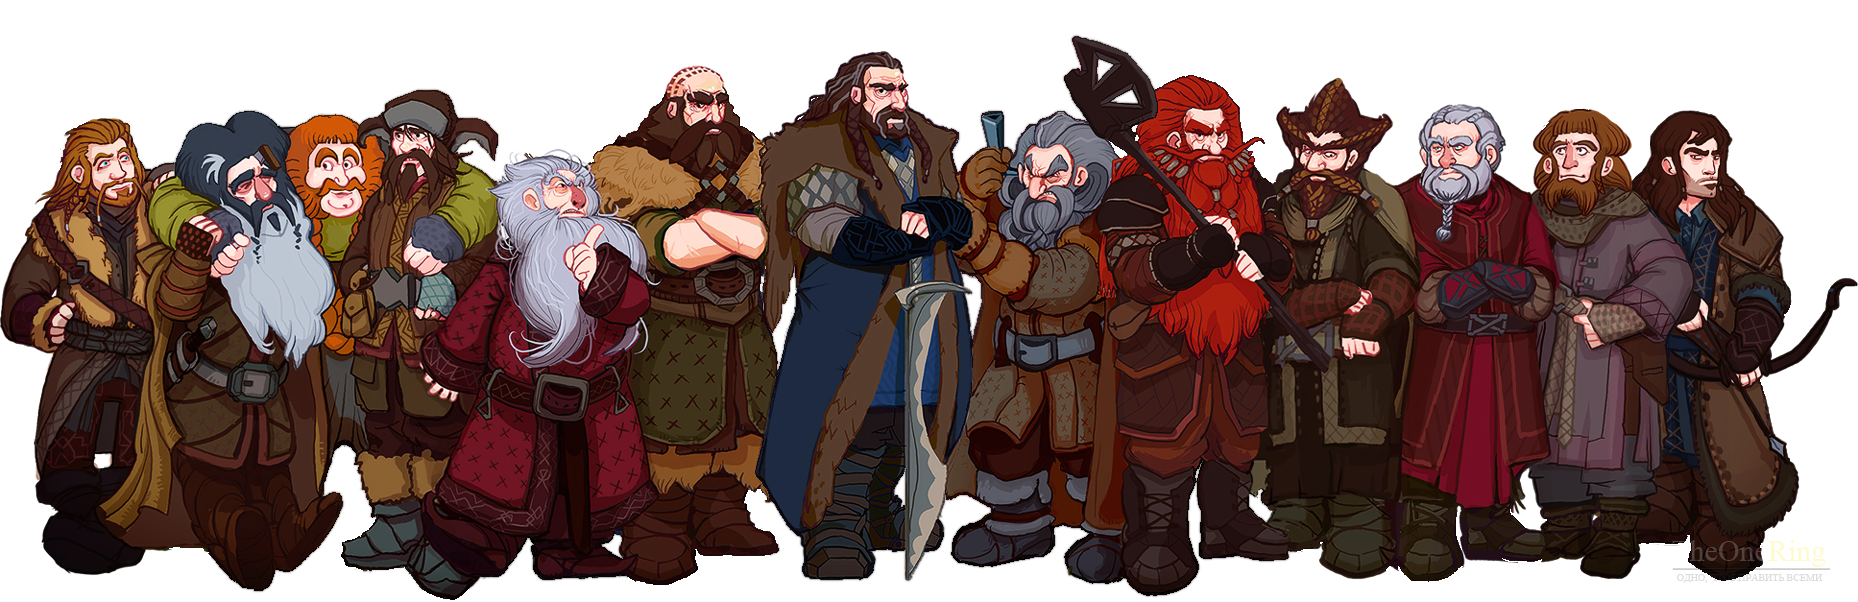 Торин и Отряд (Thorin and Company)